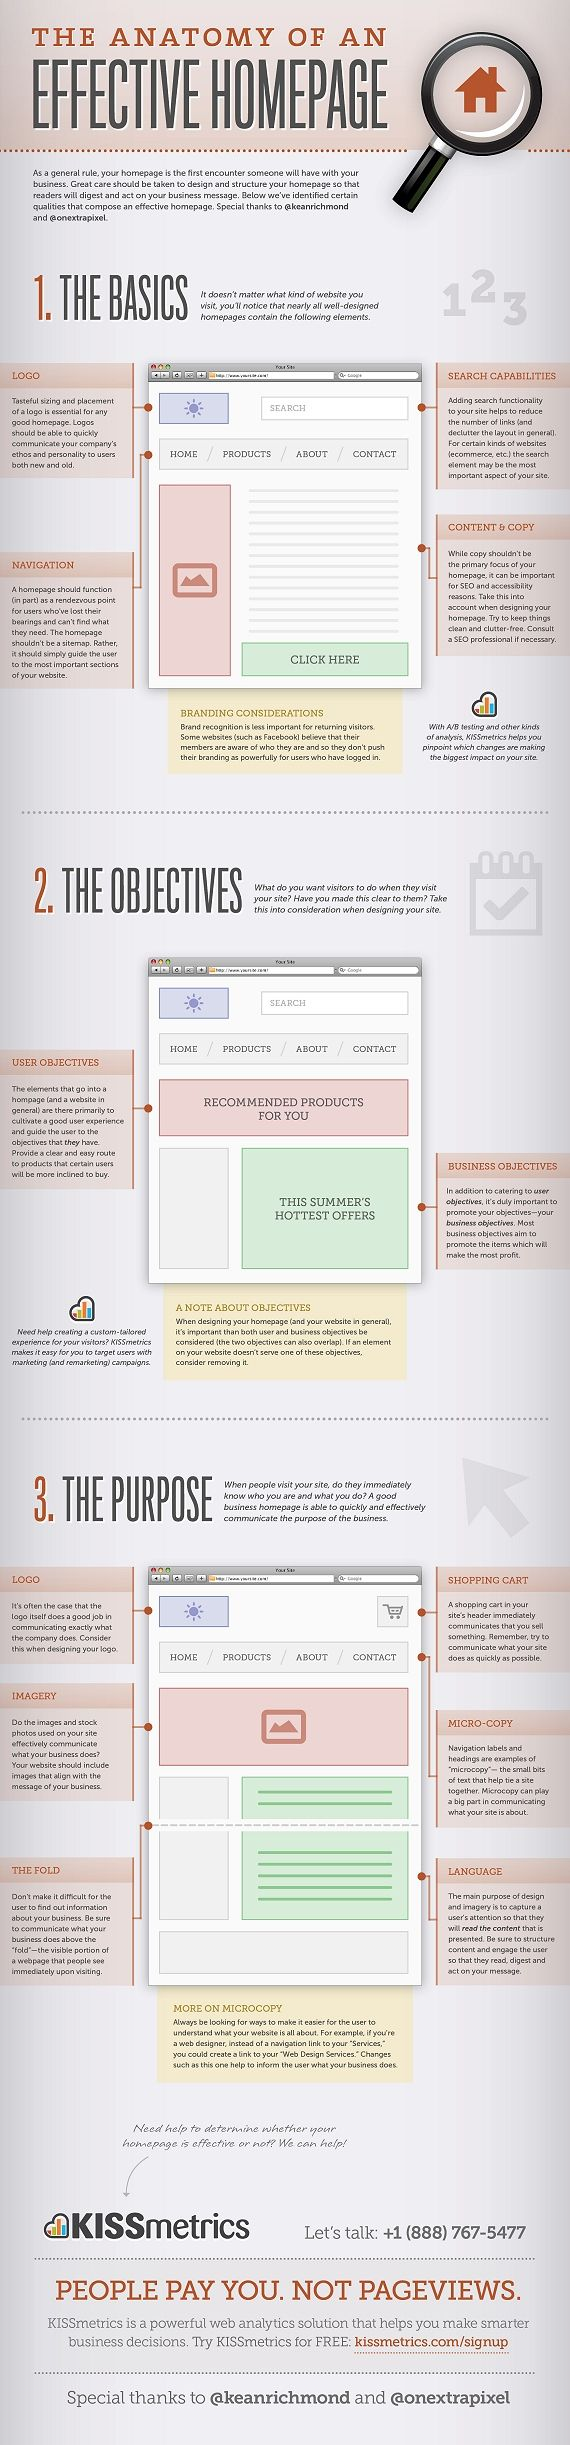 find this pin and more on best homepages the anatomy of an effective homepage - Best Home Page Design